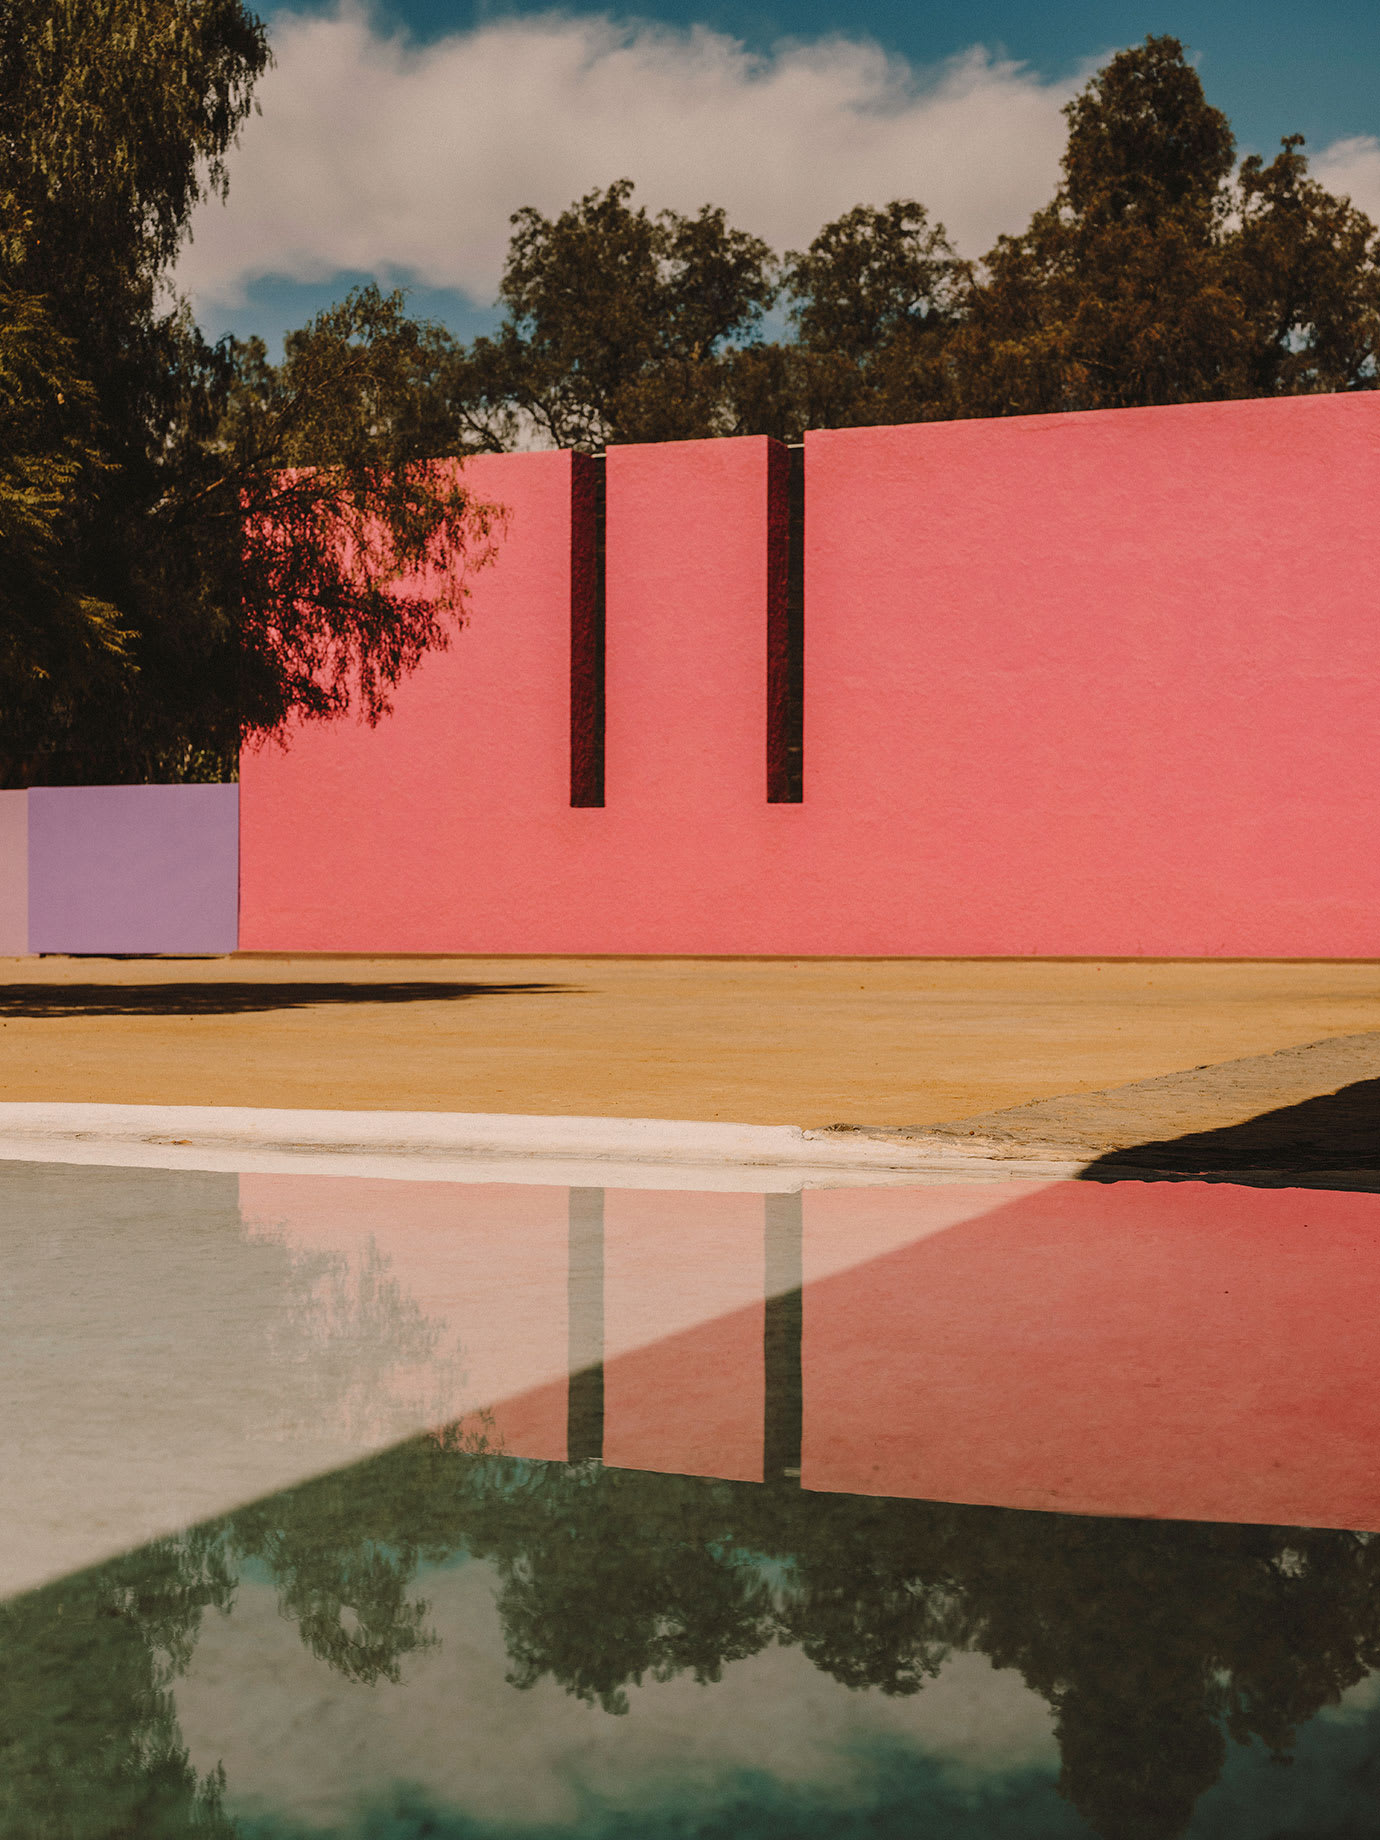 An outdoor area with a pink wall.